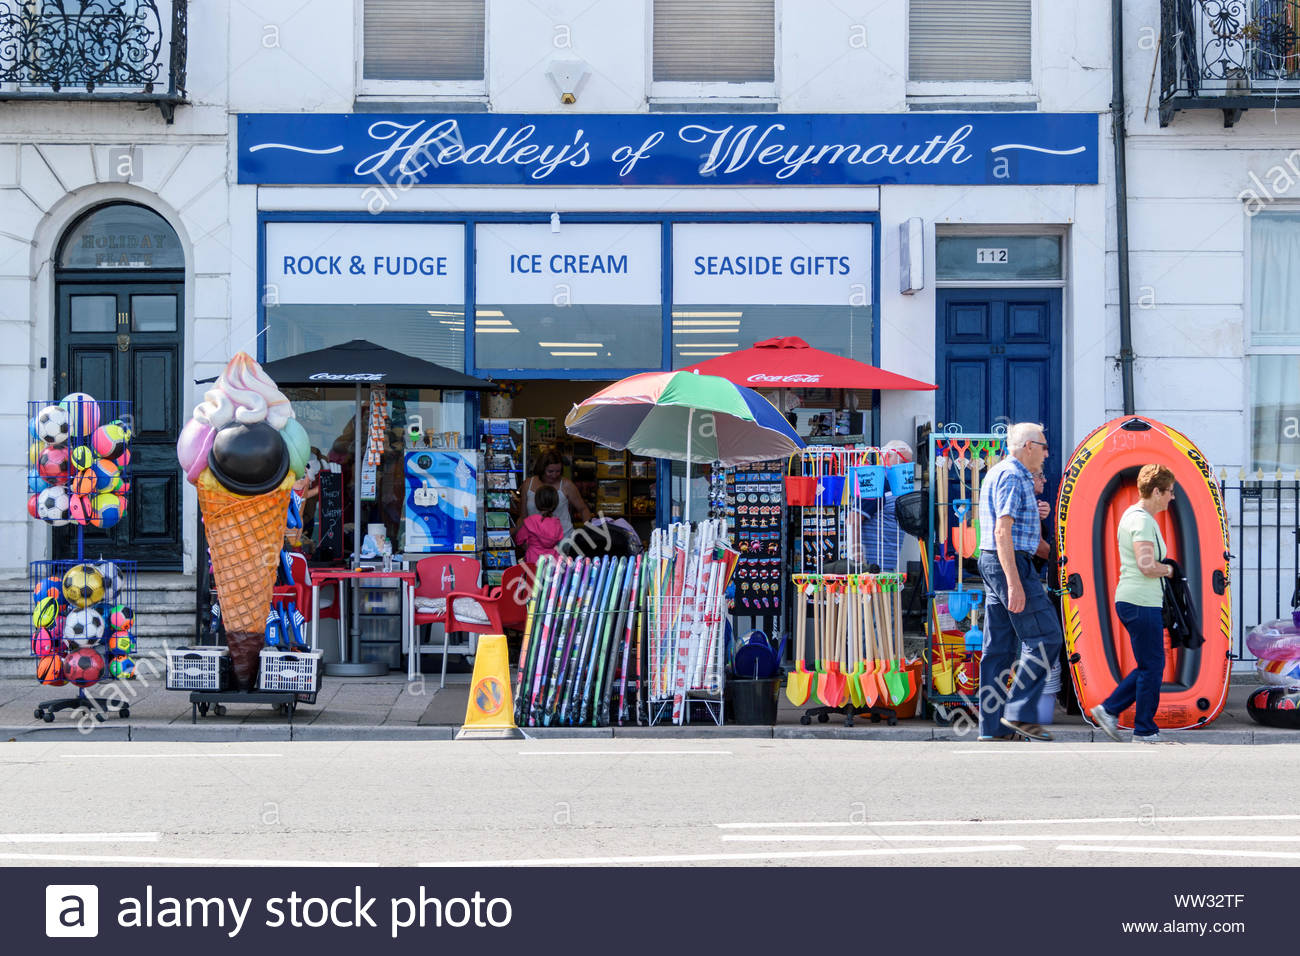 Hedley's of Weymouth, seaside gift shop at Weymouth in Dorset, England, UK Stock Photo